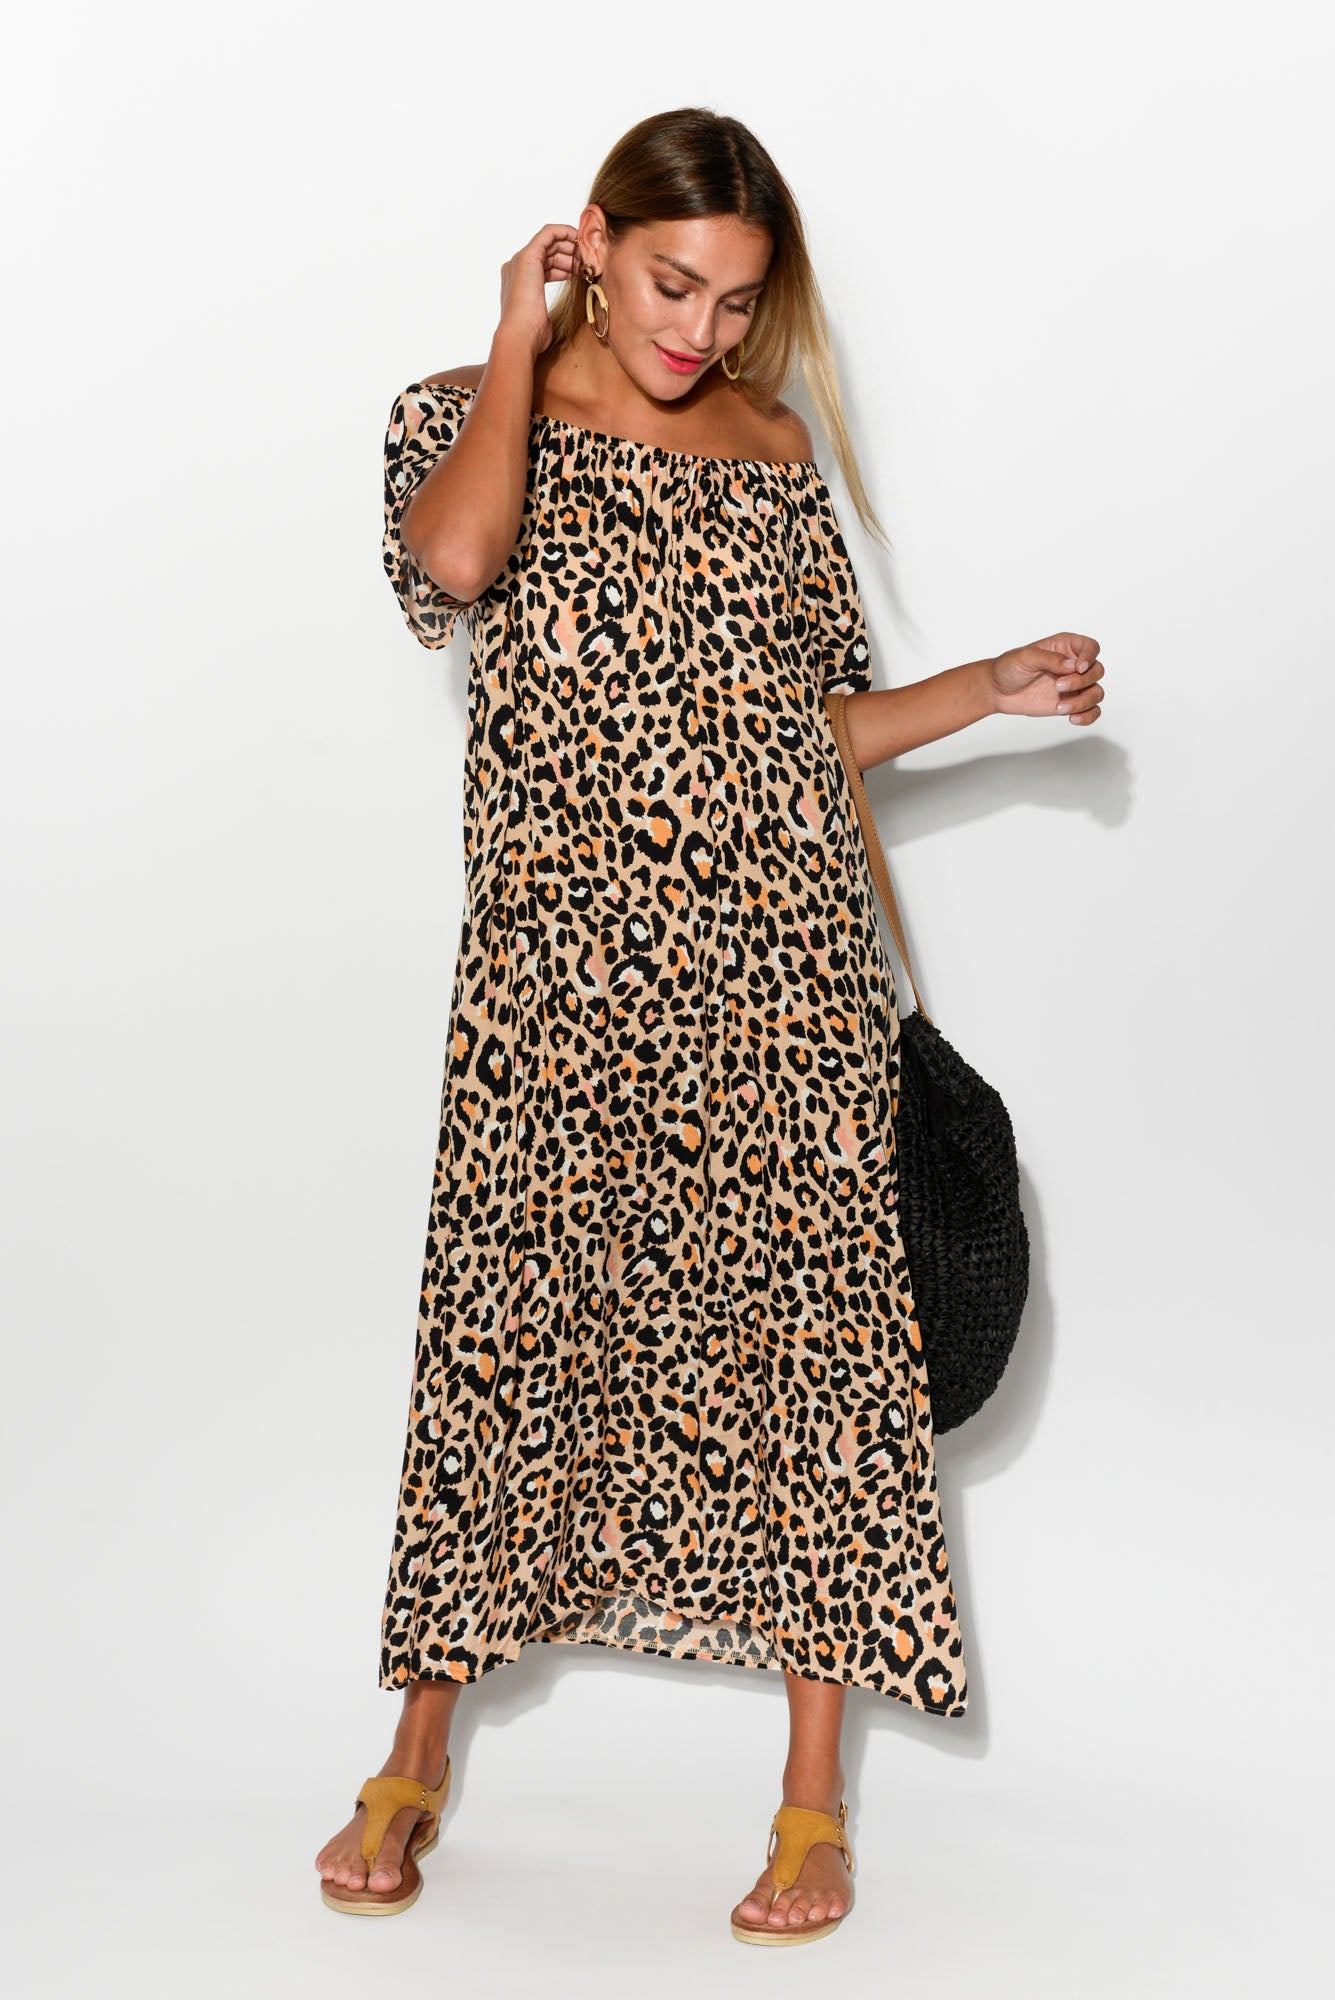 0a52e9408a Jaymie Leopard Off Shoulder Maxi Dress - Blue Bungalow. Hover to zoom